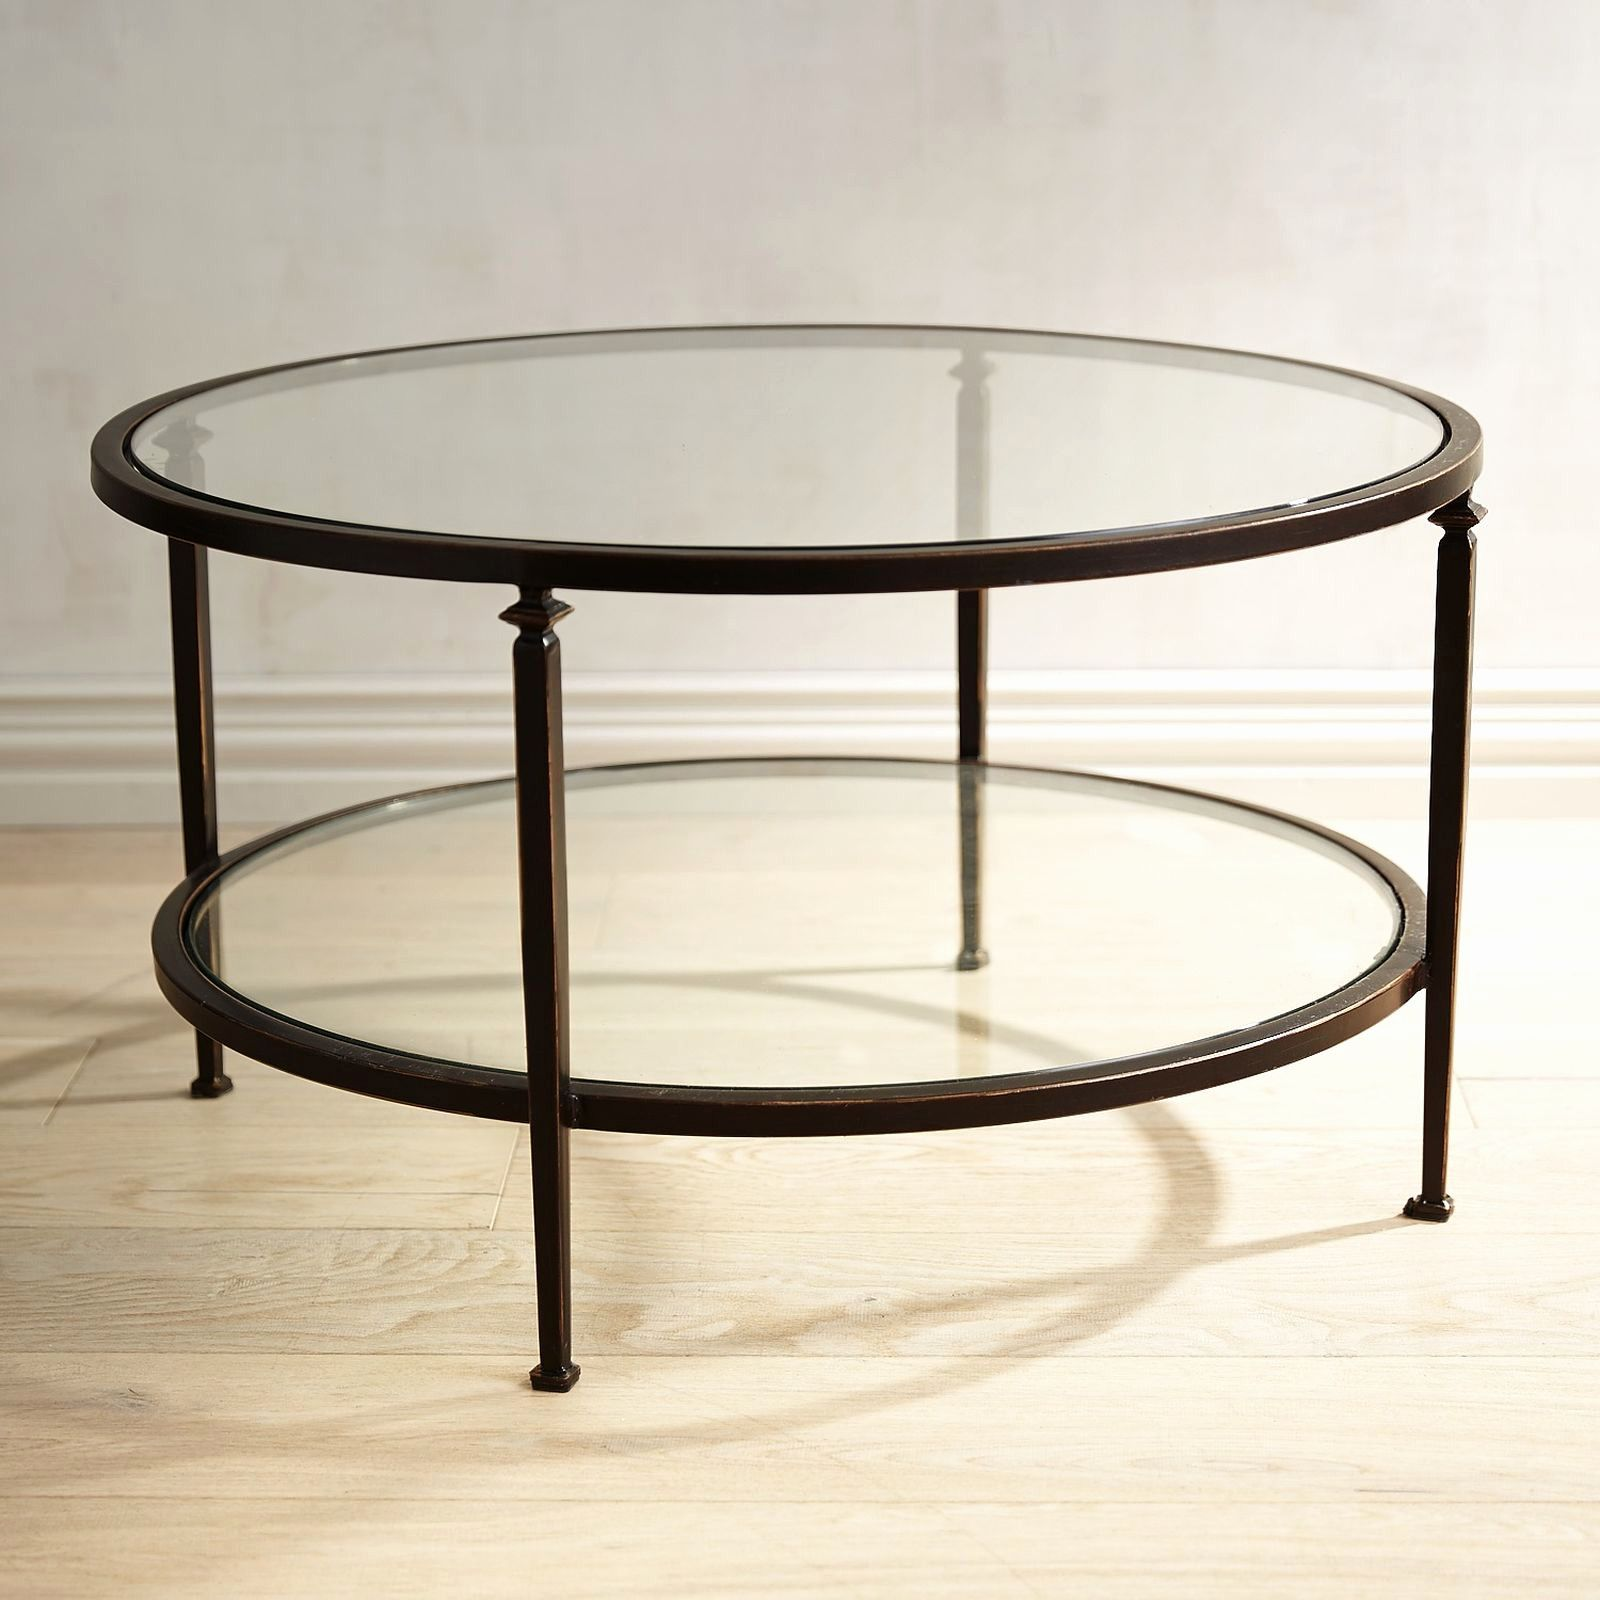 12 Oval Glass And Metal Coffee Table Images Di 2020